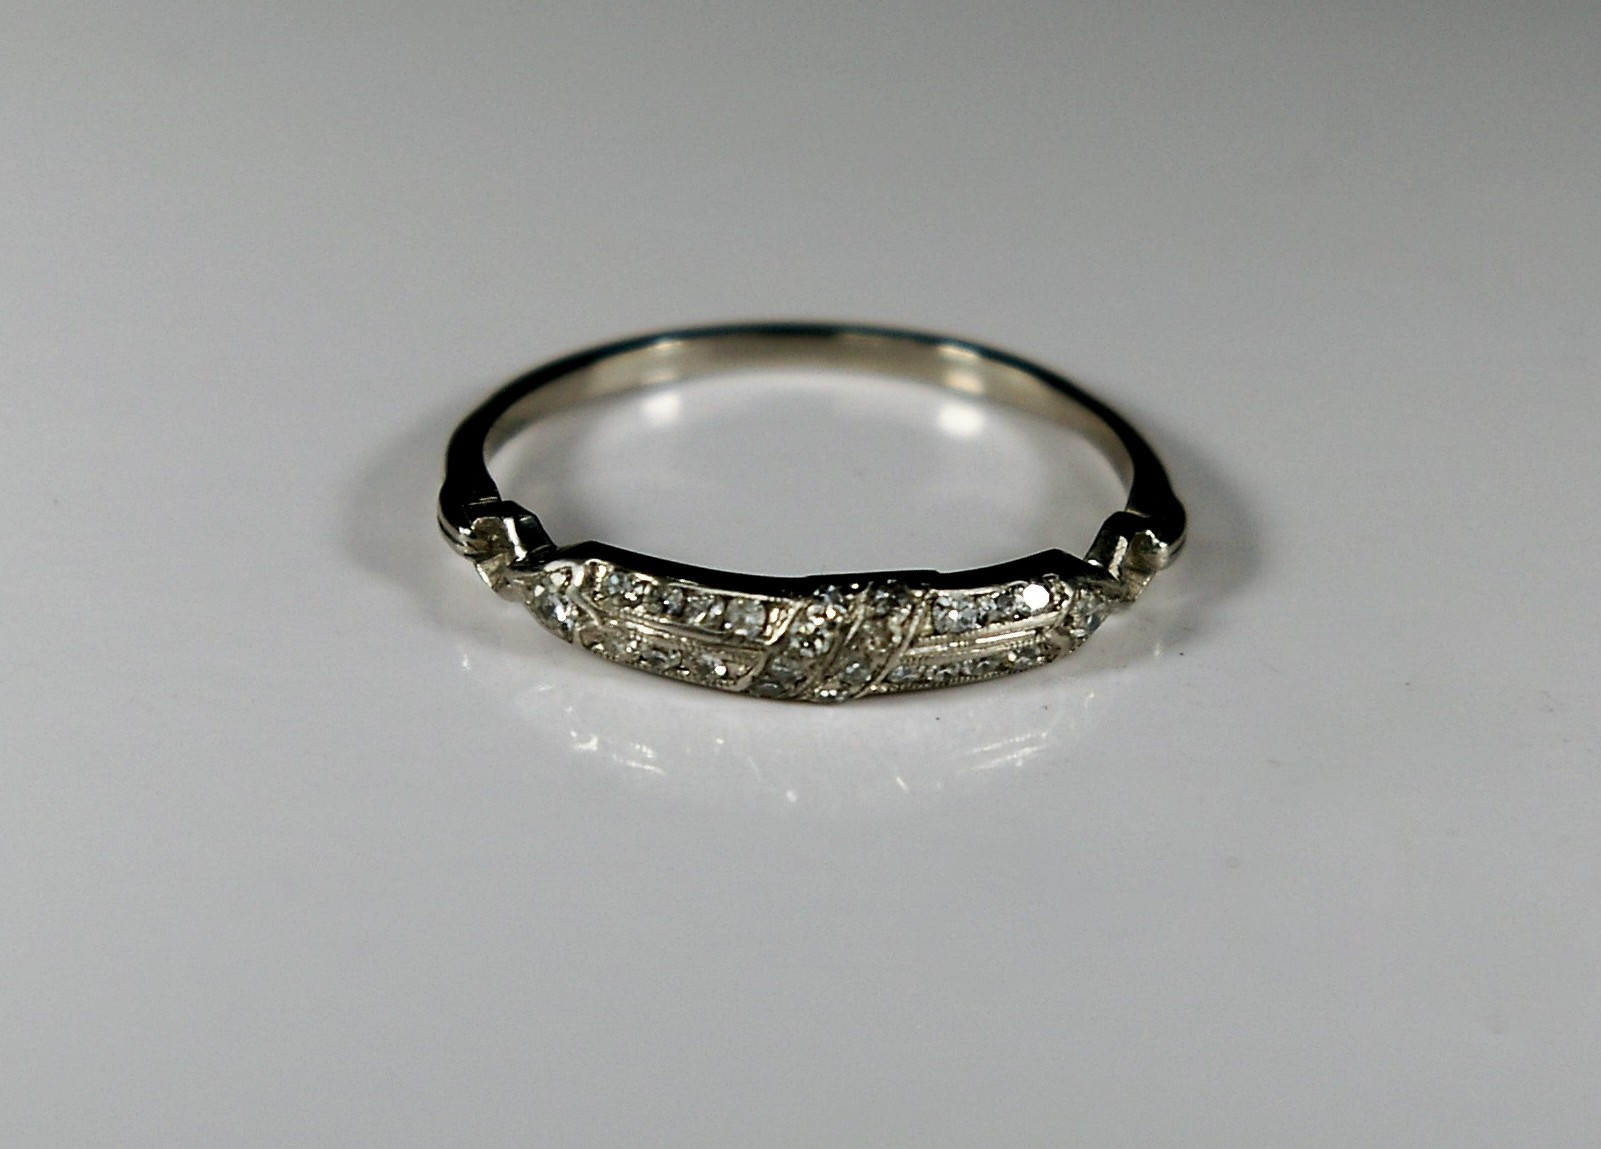 - The wedding ring to the left had been worn almost continuously for two generations. It was being passed on to a third generation. It had been worn next to an engagement ring for nearly a century and was extremely worn and in poor condition.